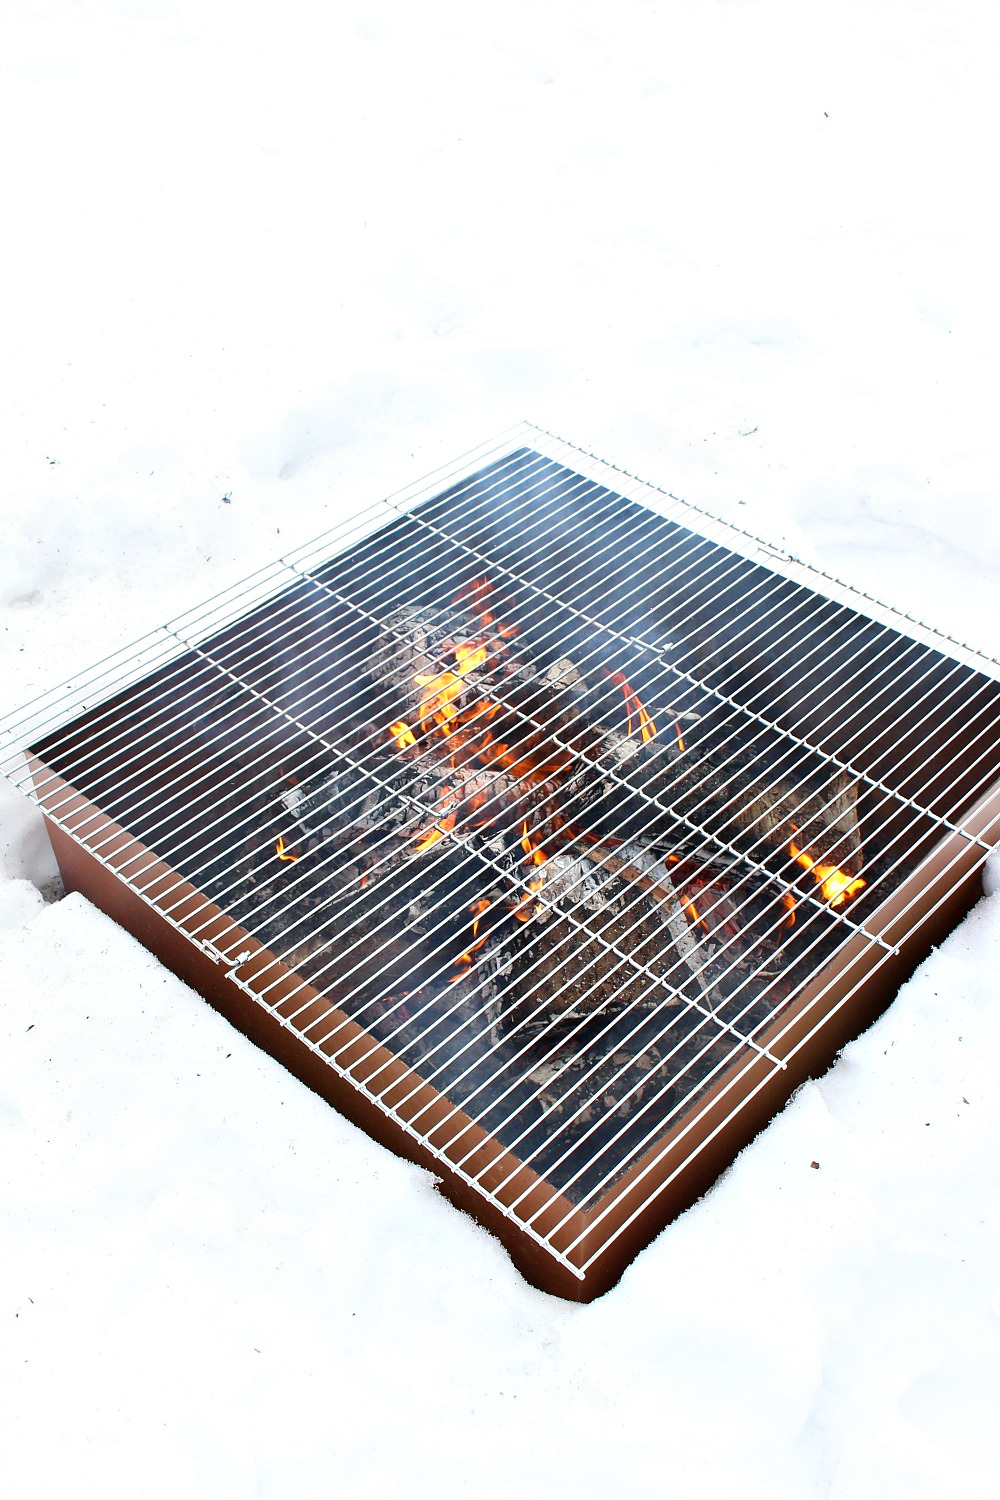 Cooking Grate for Firepit